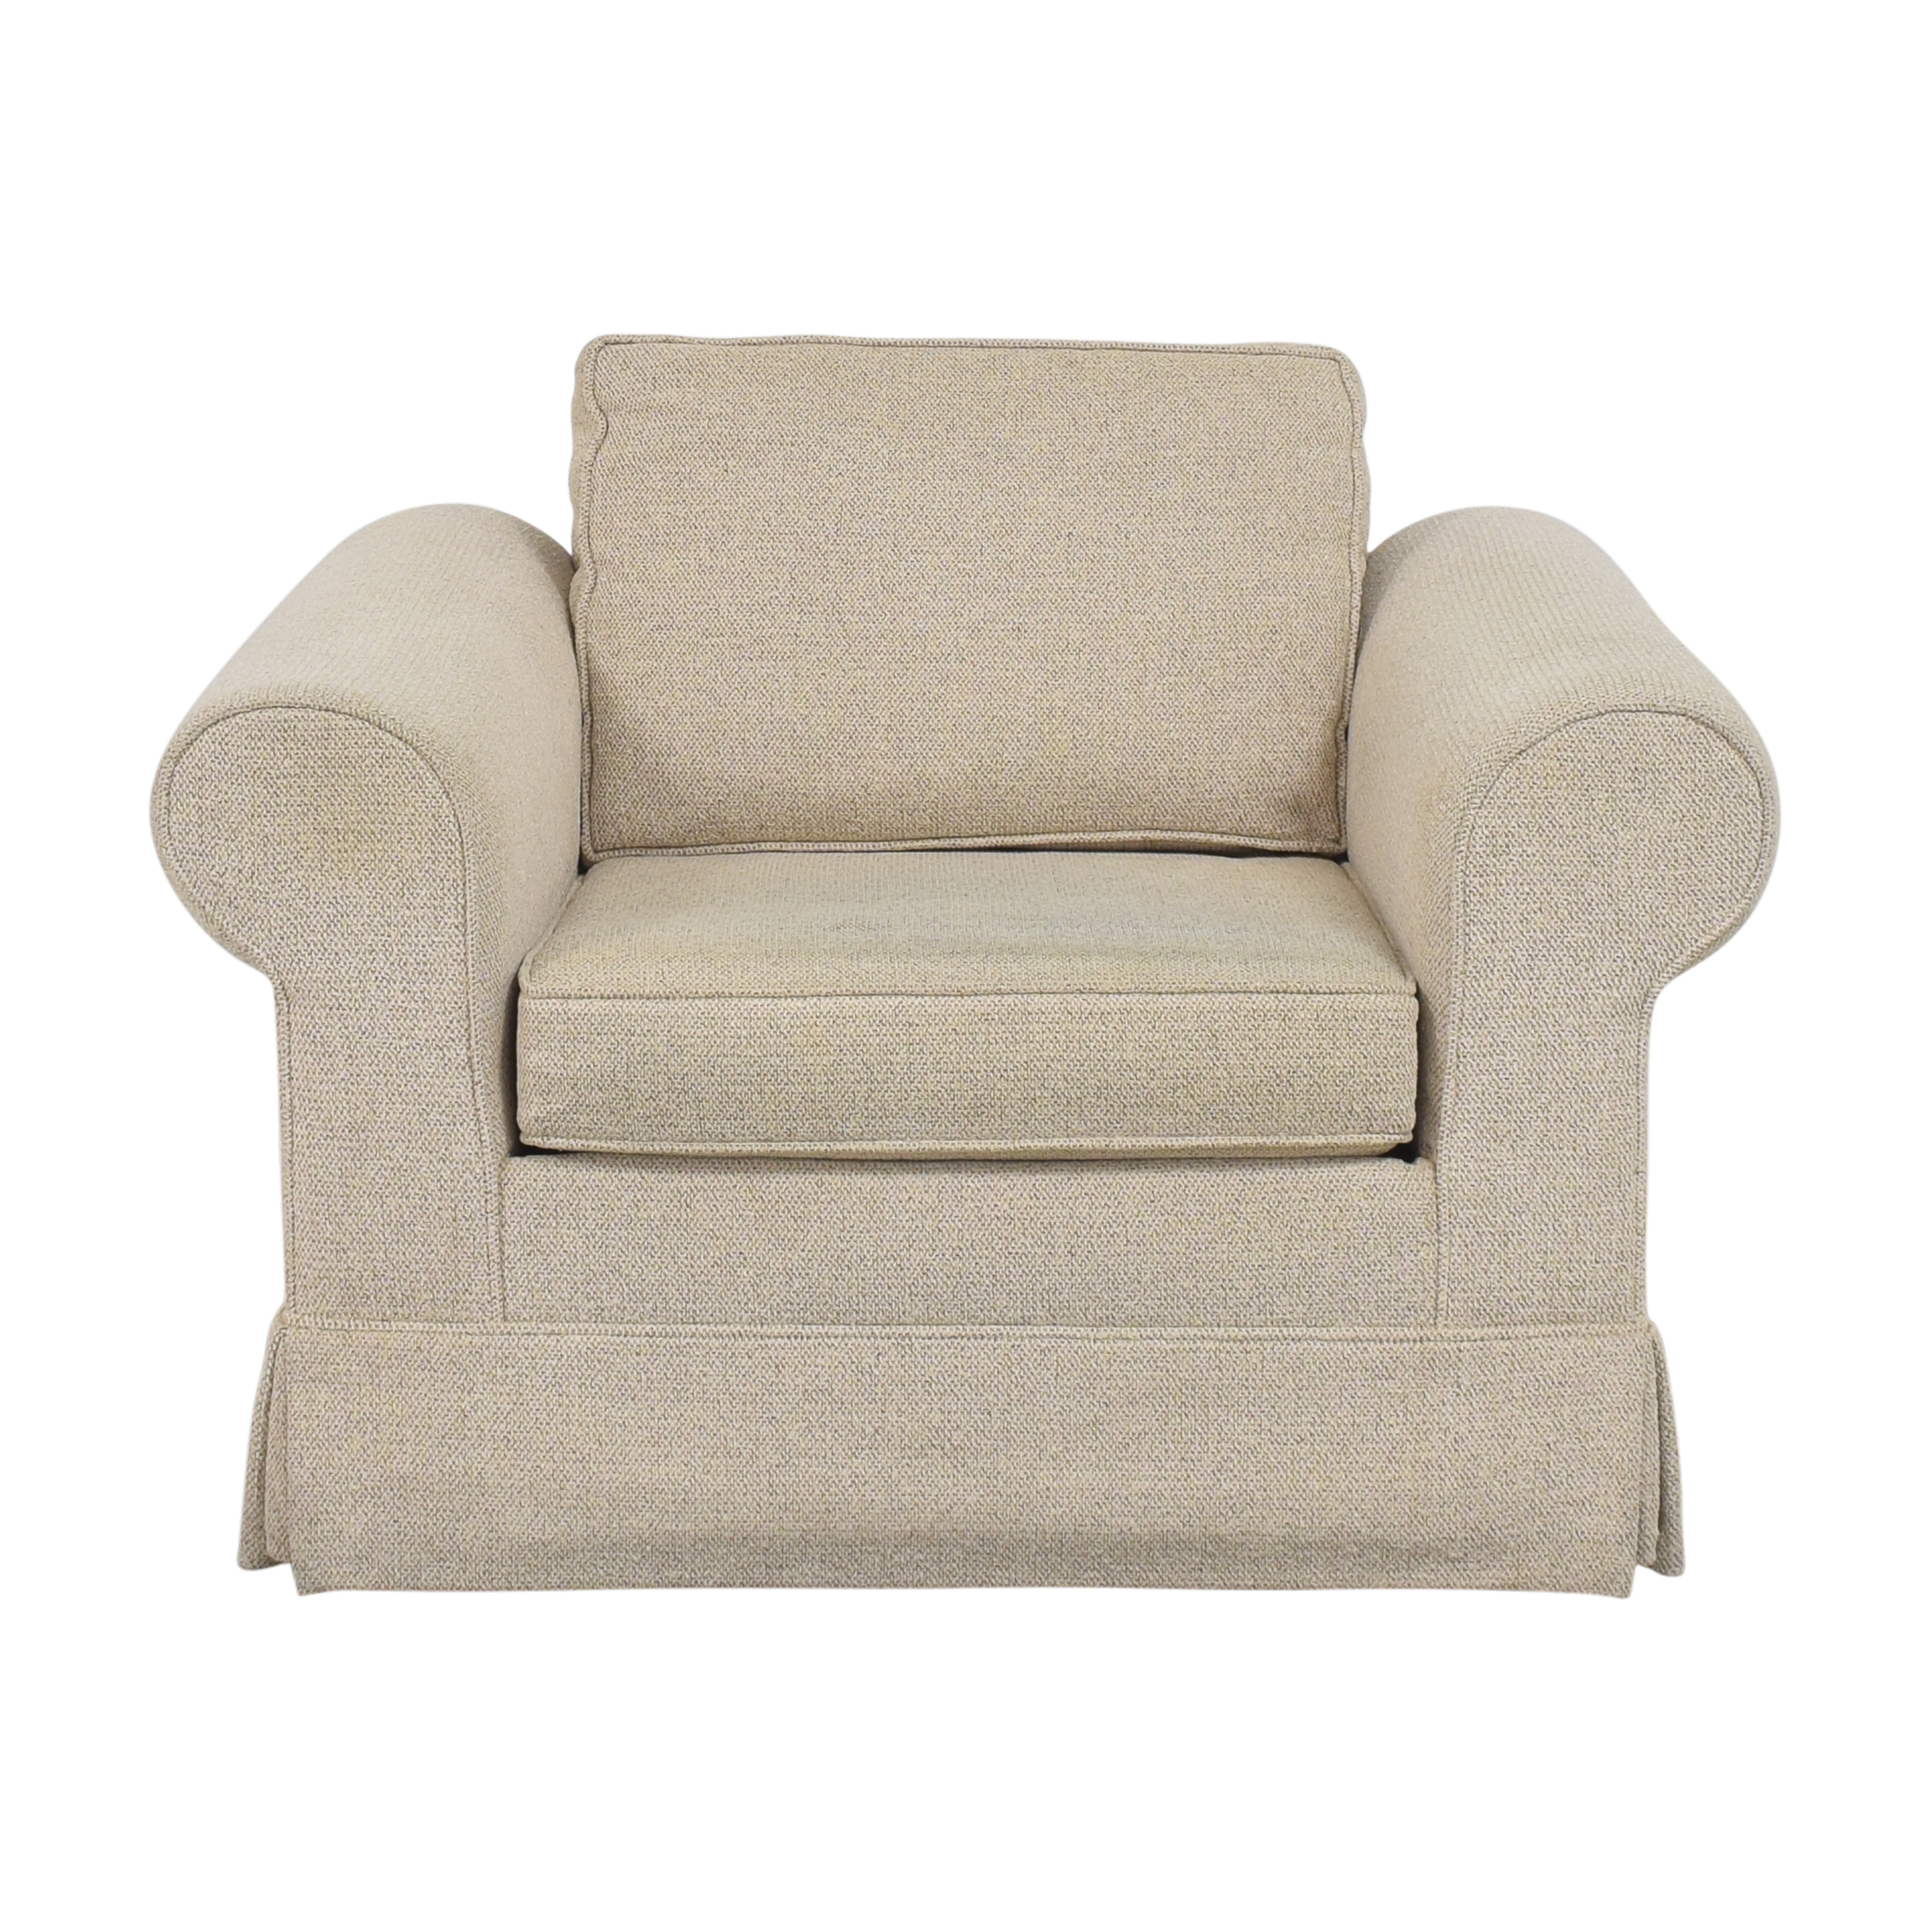 Roll Arm Club Chair on sale